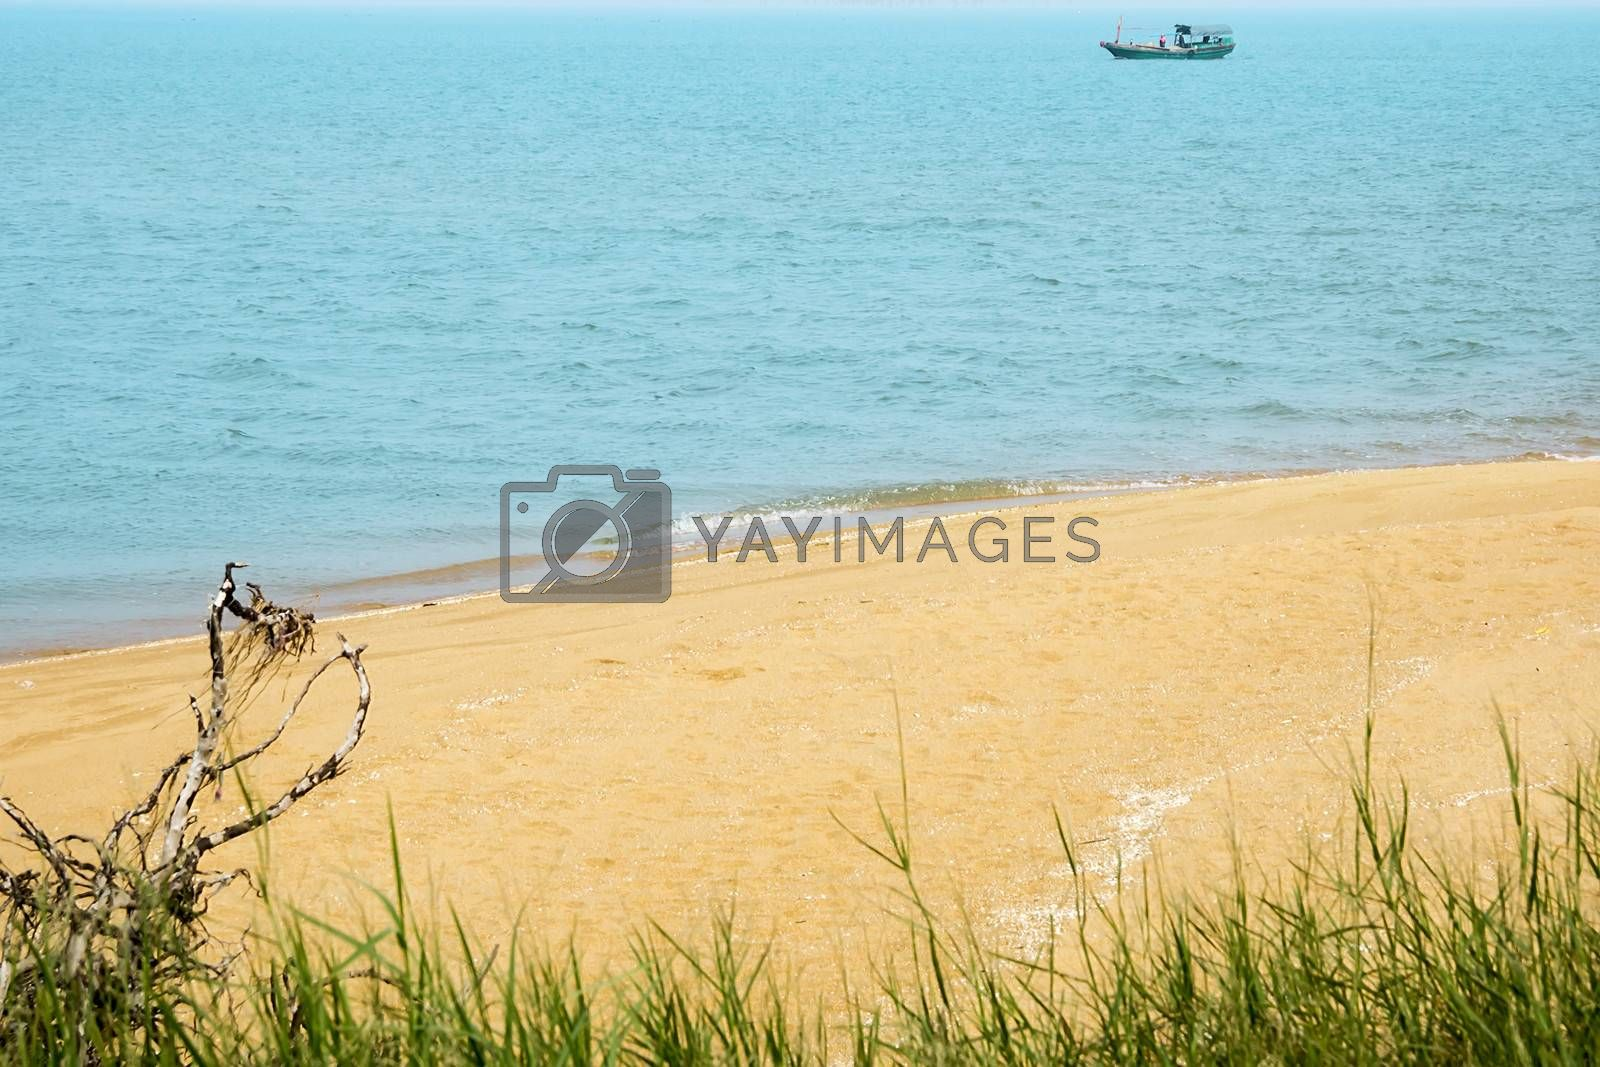 Royalty free image of China's Hainan Island tropical coastal scenery by xfdly5